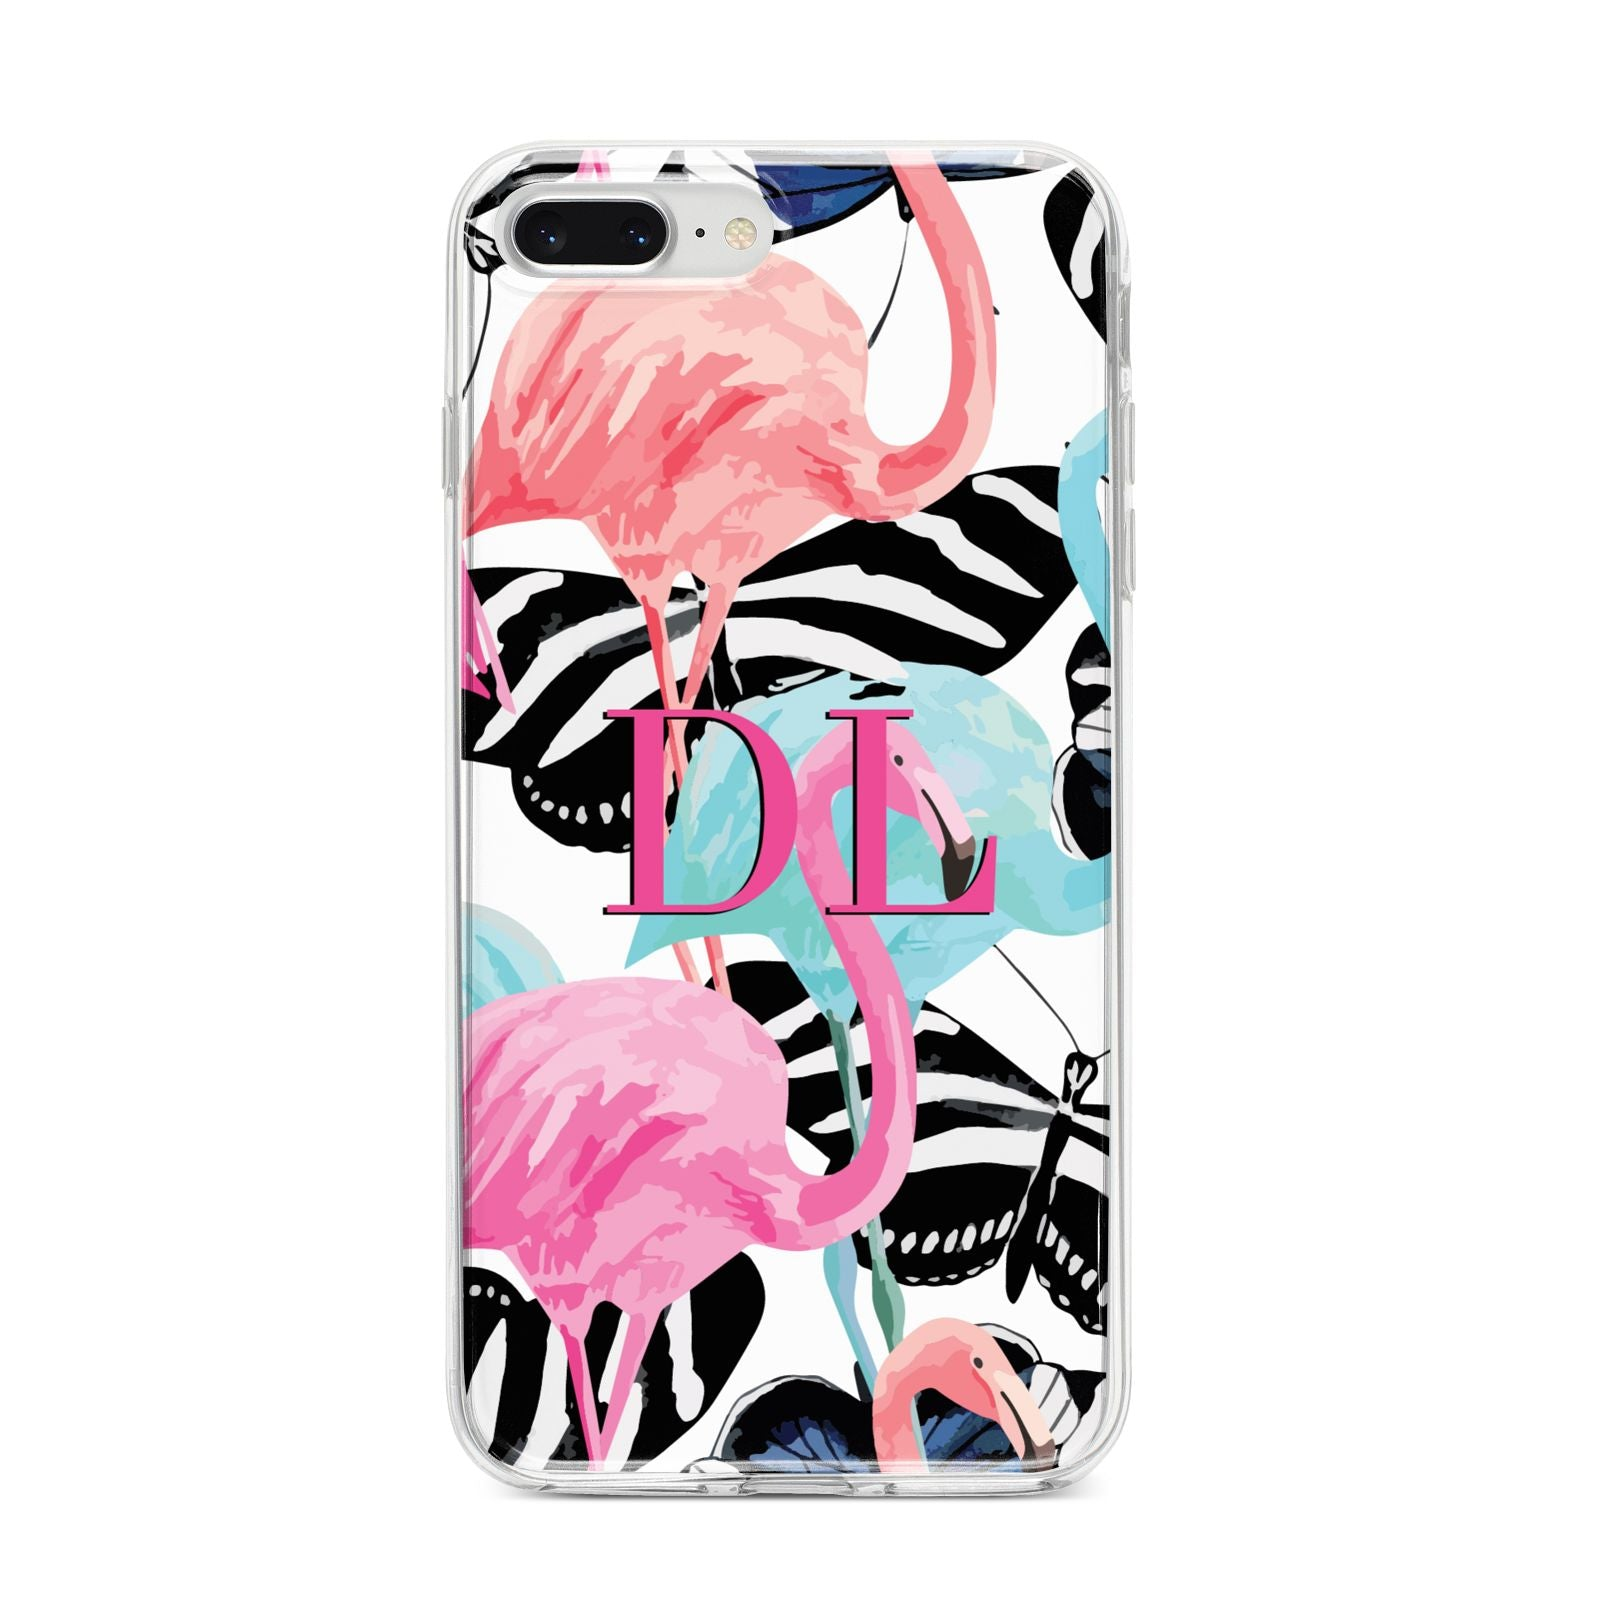 Butterflies Flamingos iPhone 8 Plus Bumper Case on Silver iPhone